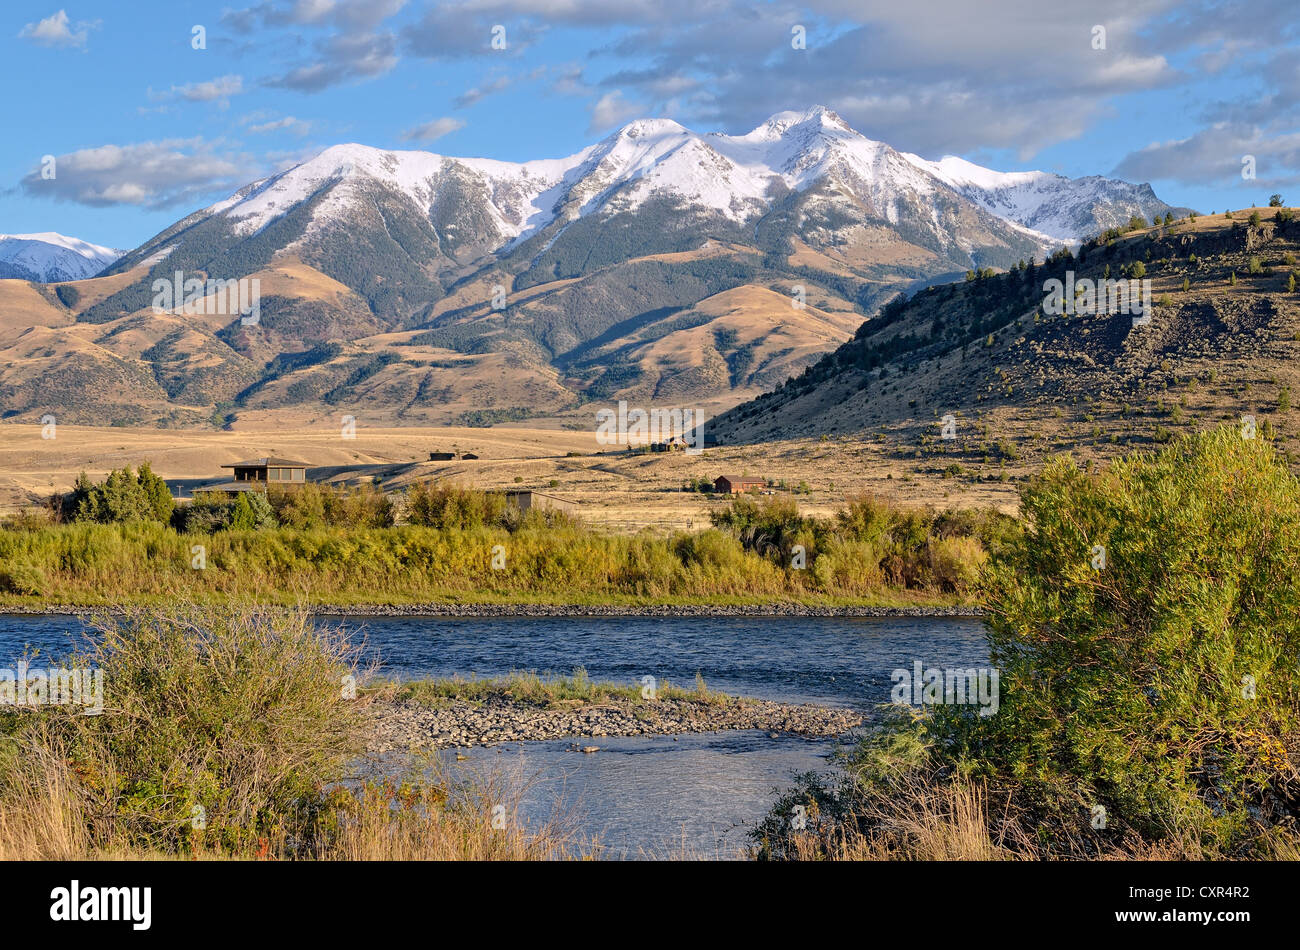 Emigrant Peak, 3327m, with the Yellowstone River, Absaroka Range, Paradise Valley, Livingston, Montana, USA - Stock Image